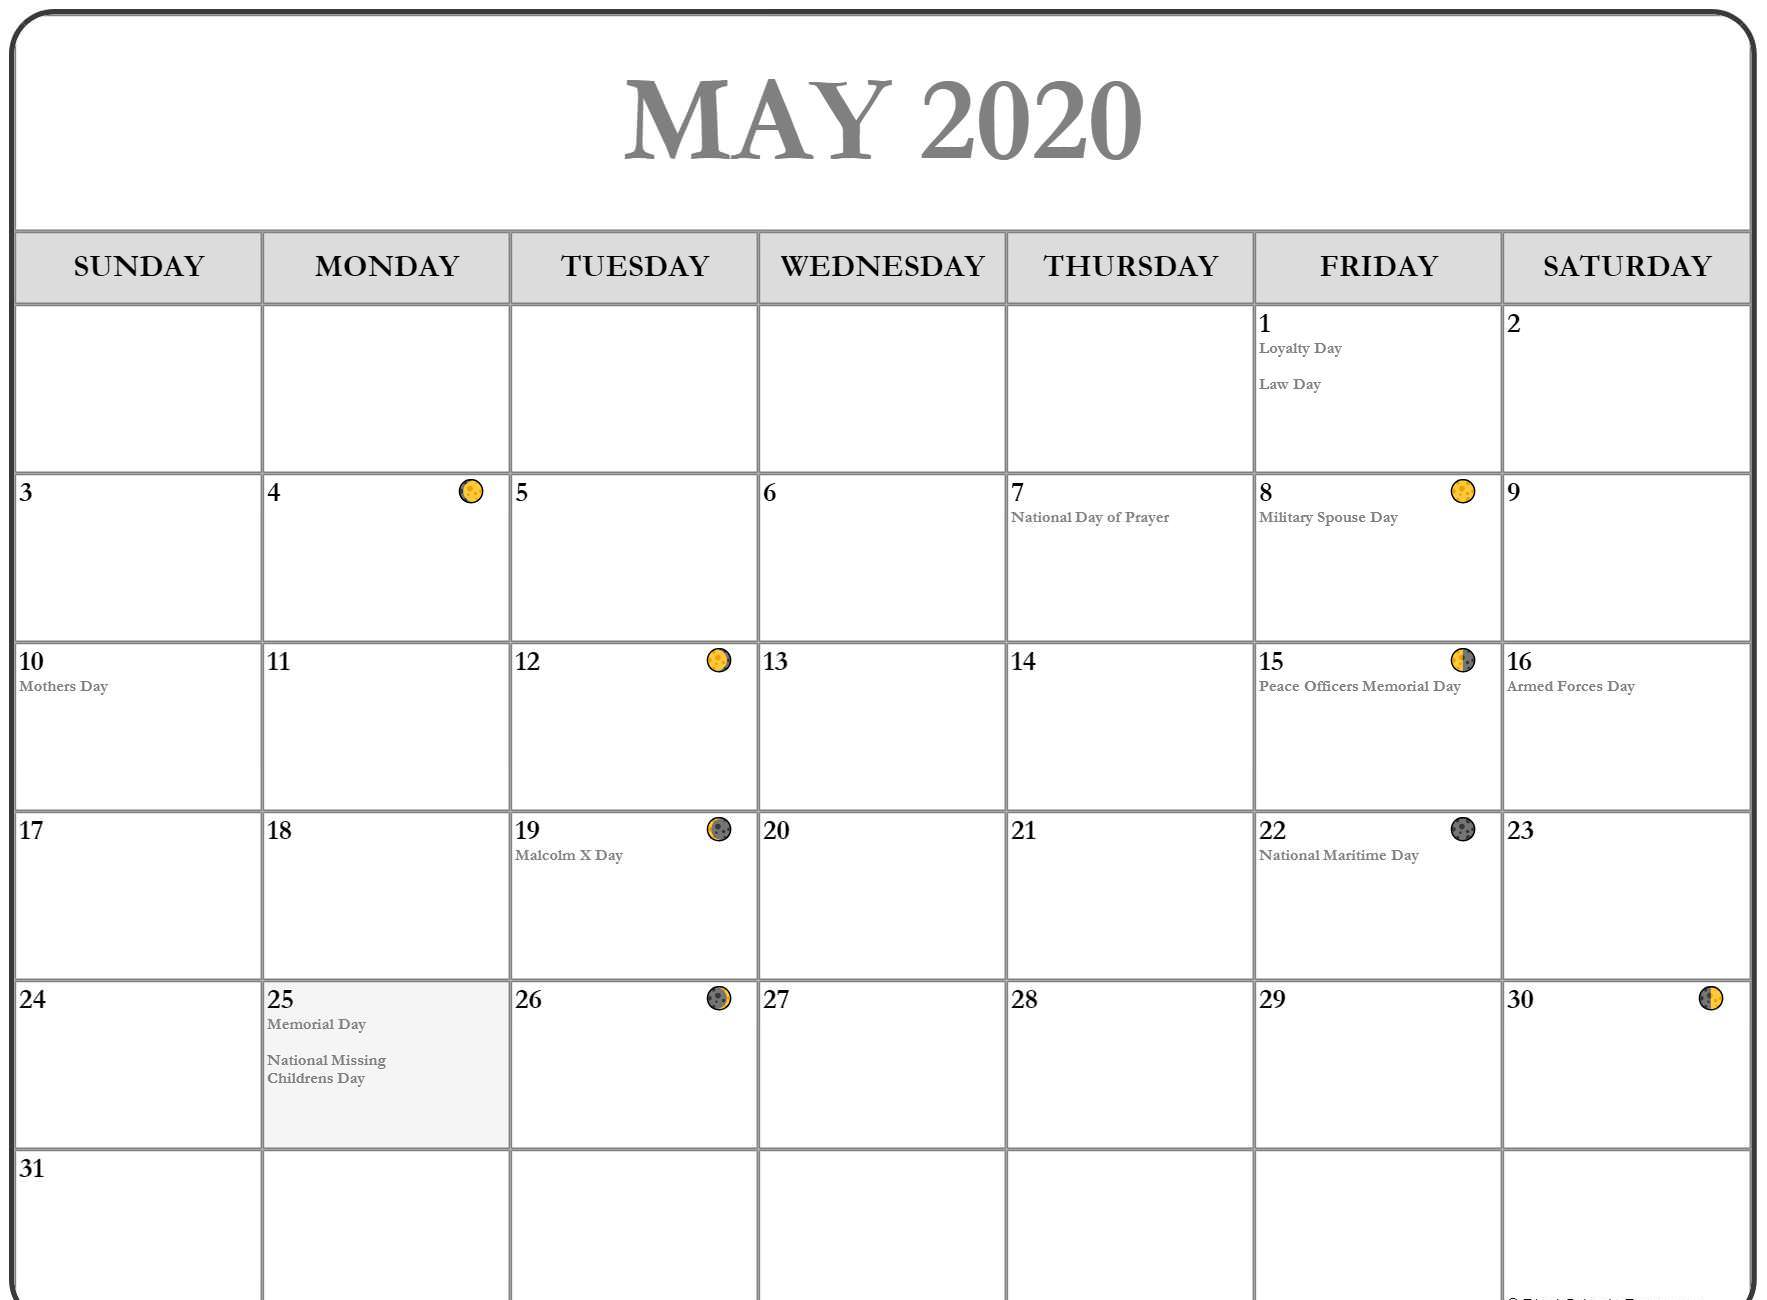 May 2020 Lunar Calendar Template